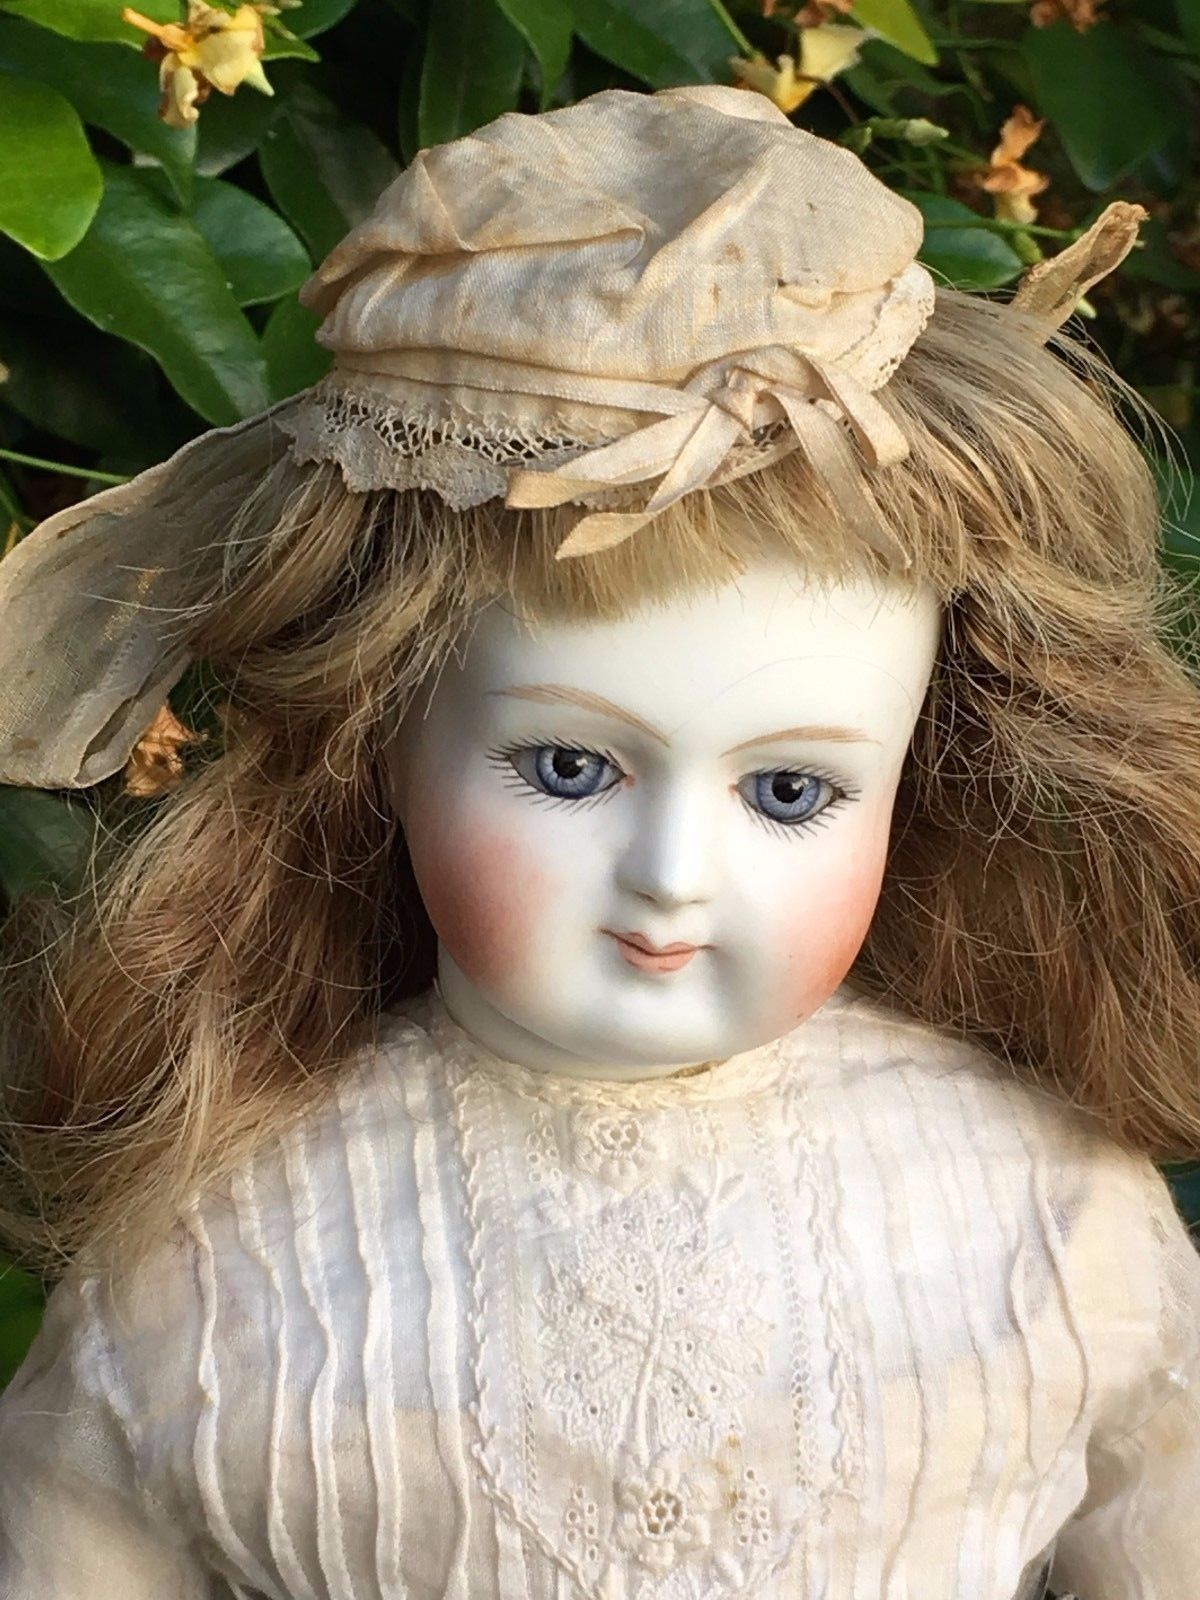 rare french fashion bisque head, certainly Bru, bisque arms, 18 inches tall